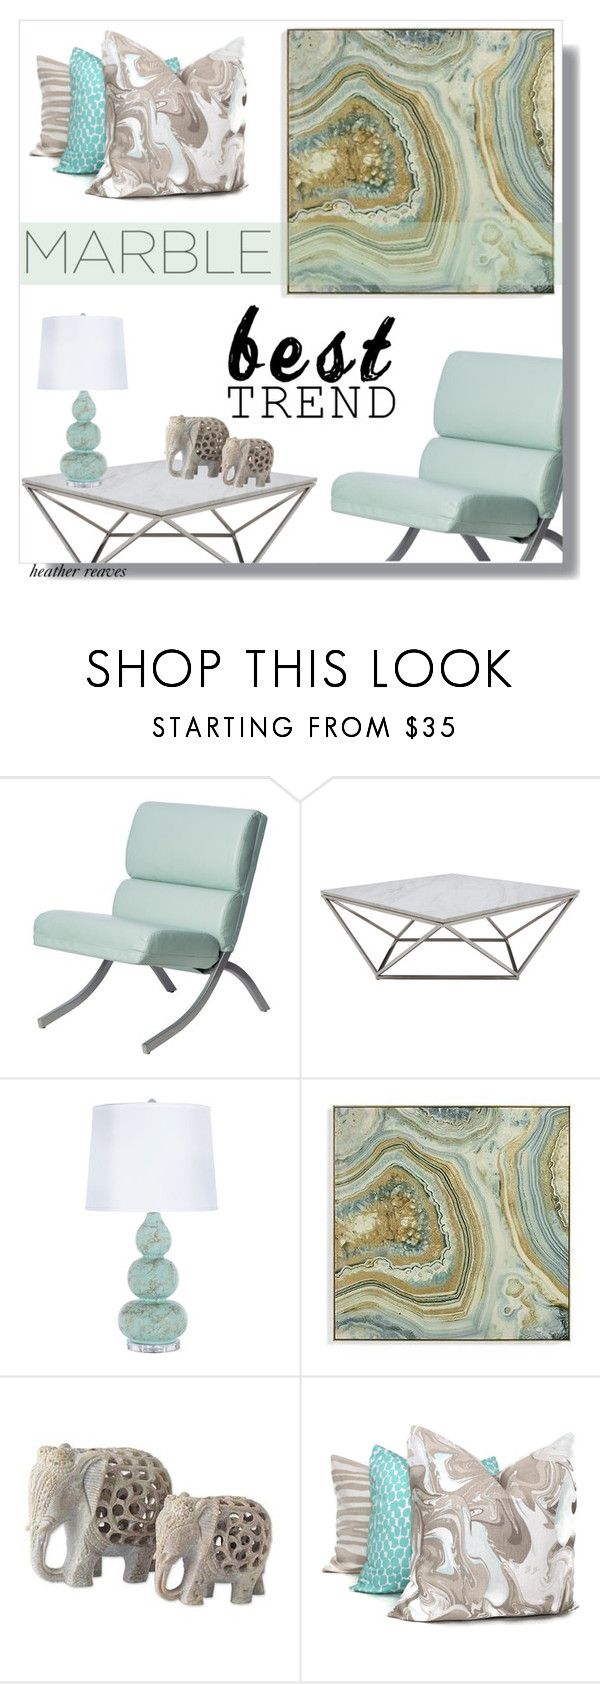 """""""Classic Elegance: Marble Home"""" by heather-reaves ❤ liked on Polyvore featuring interior, interiors, interior design, home, home decor, interior decorating, I Love Living, Nuevo, Grandin Road and NOVICA"""